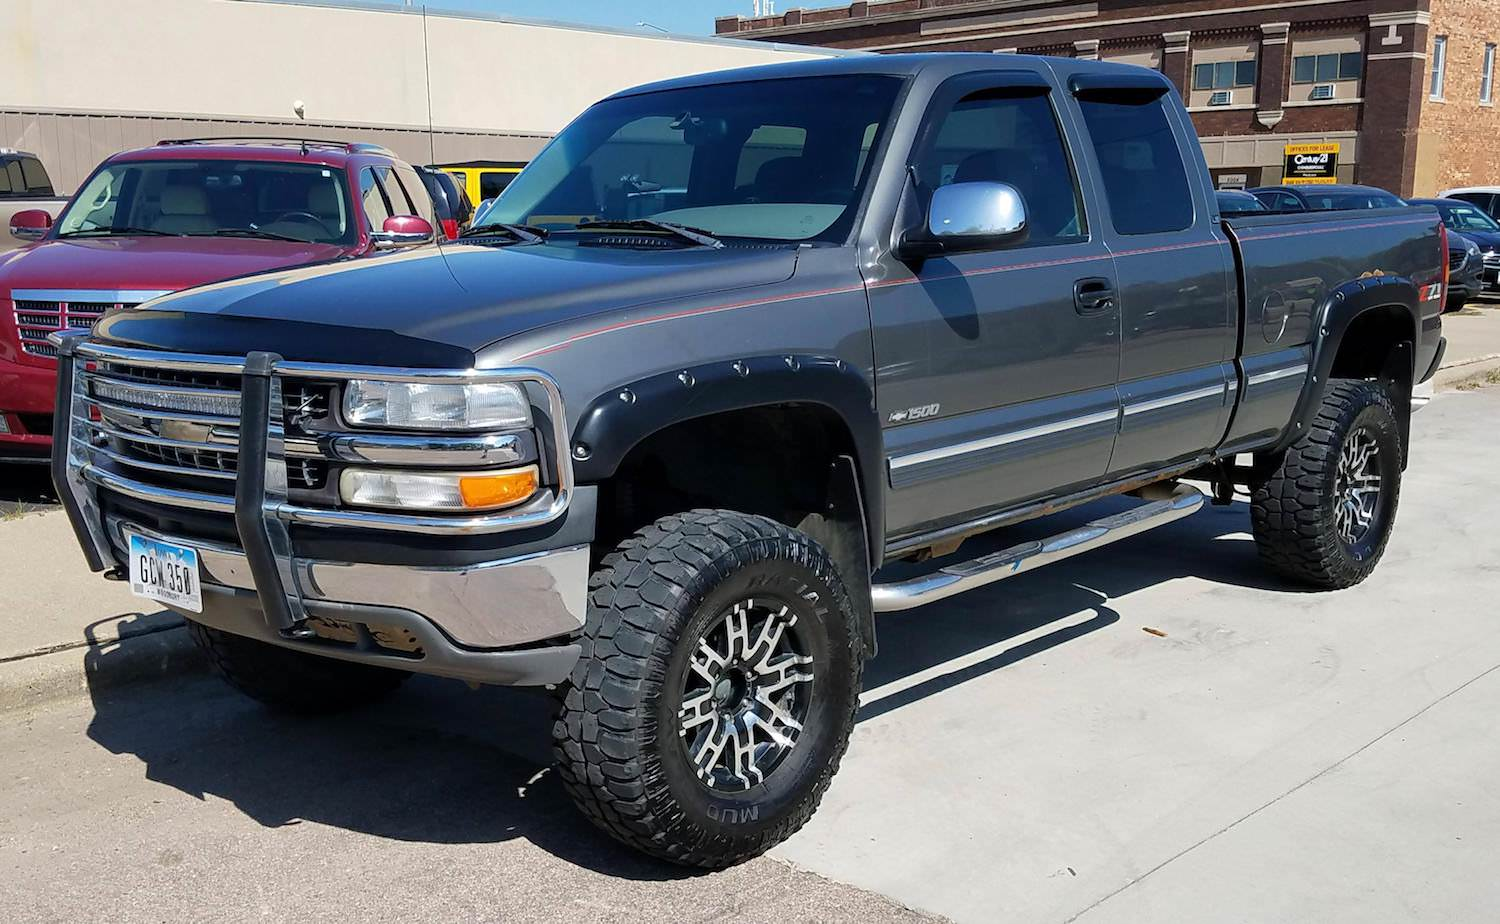 STOLEN Reward Grey 2000 Chevrolet Silverado from Morningside area